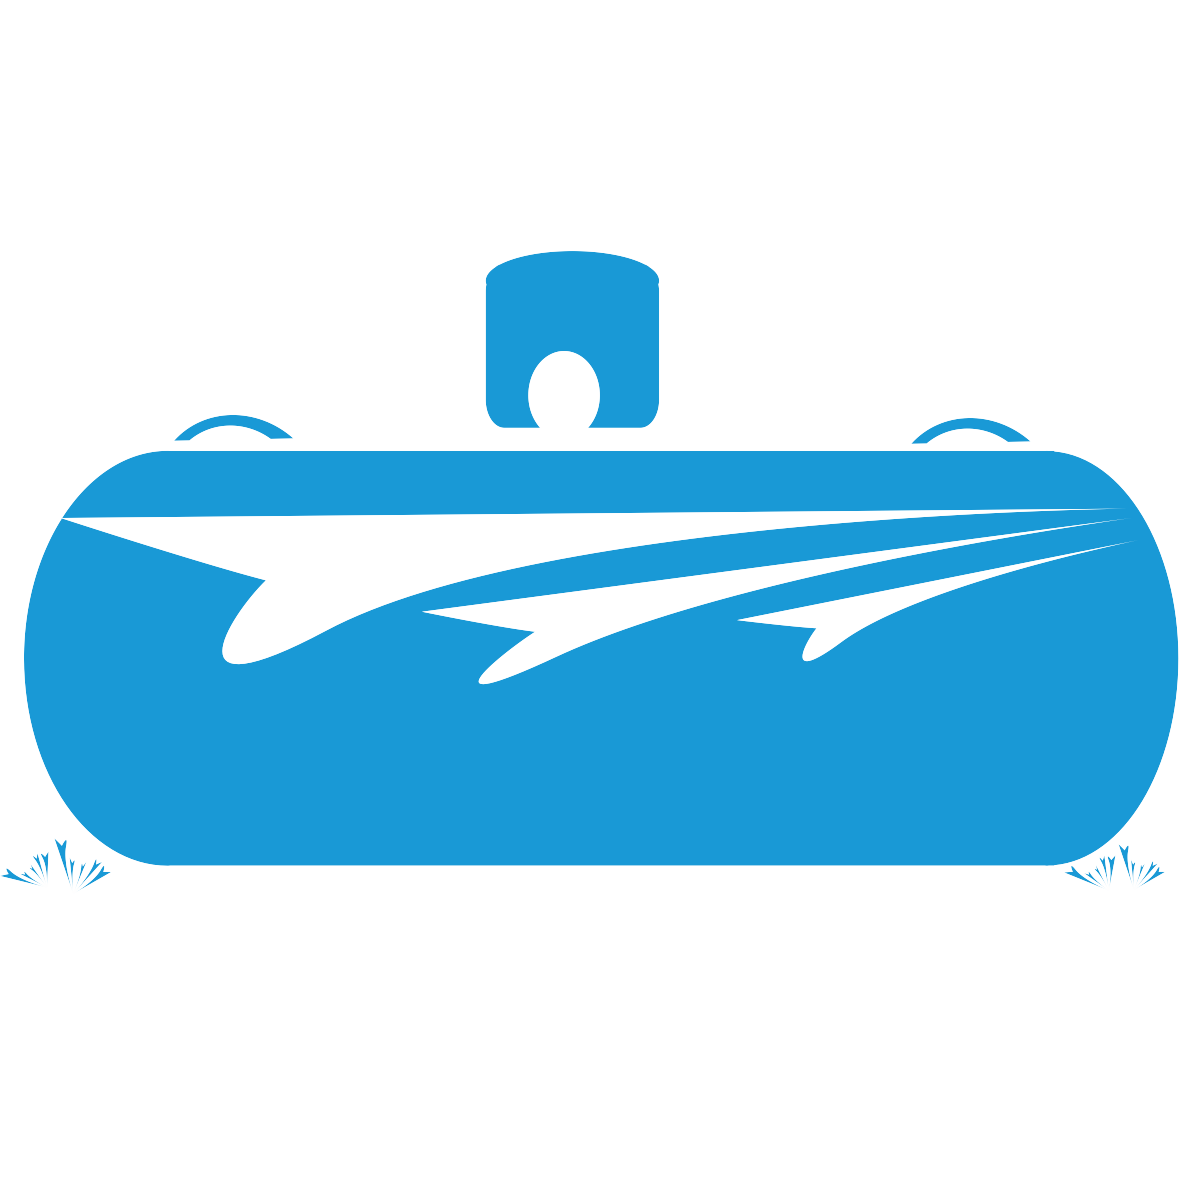 Gas clipart propane. Superior energy systems llc